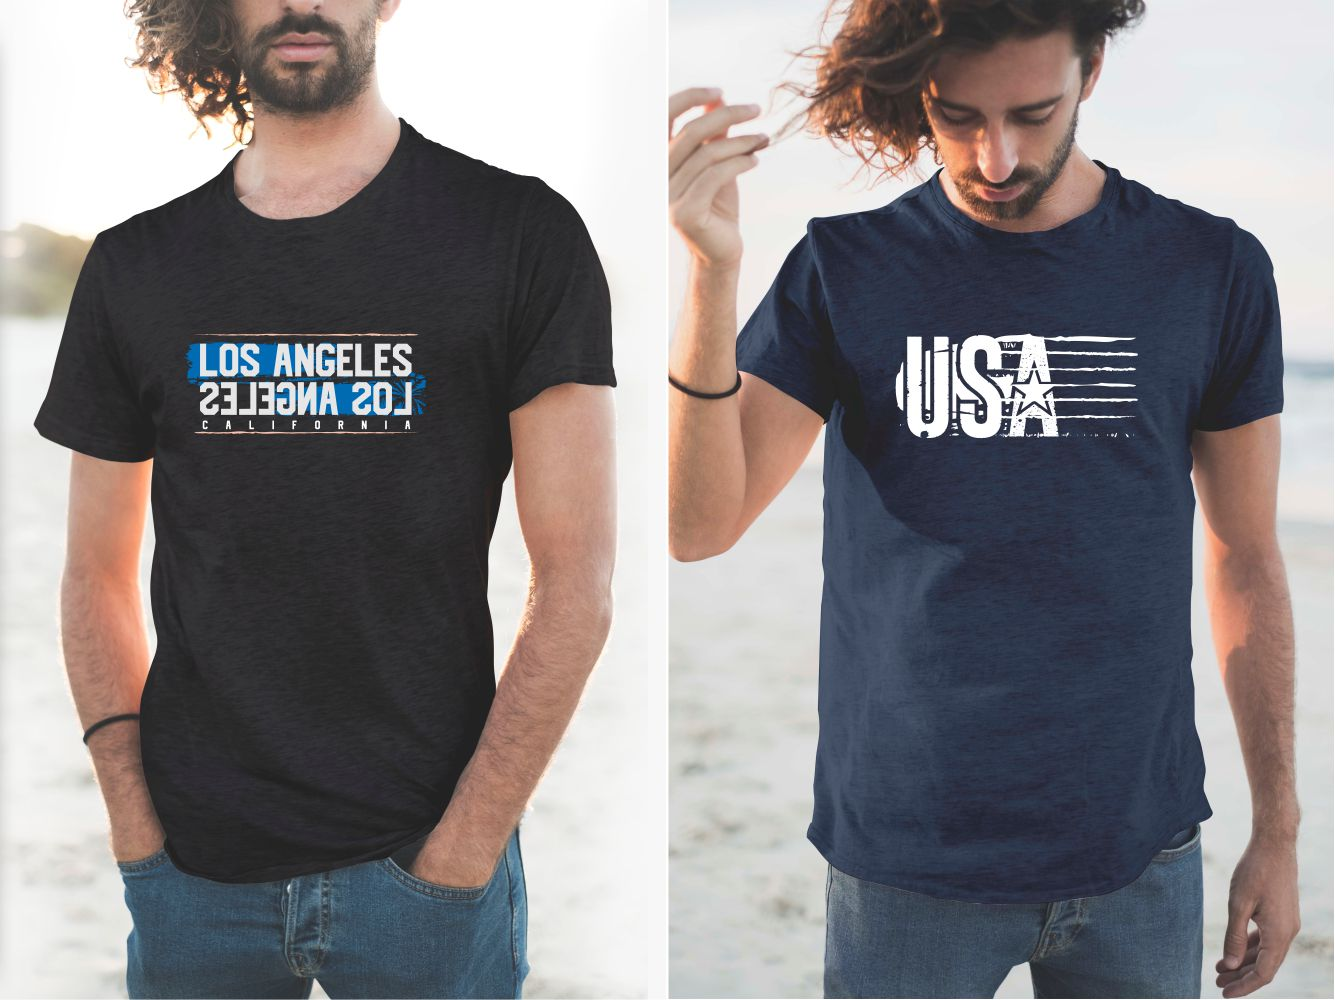 T-shirts with the Los Angeles and USA slogan.